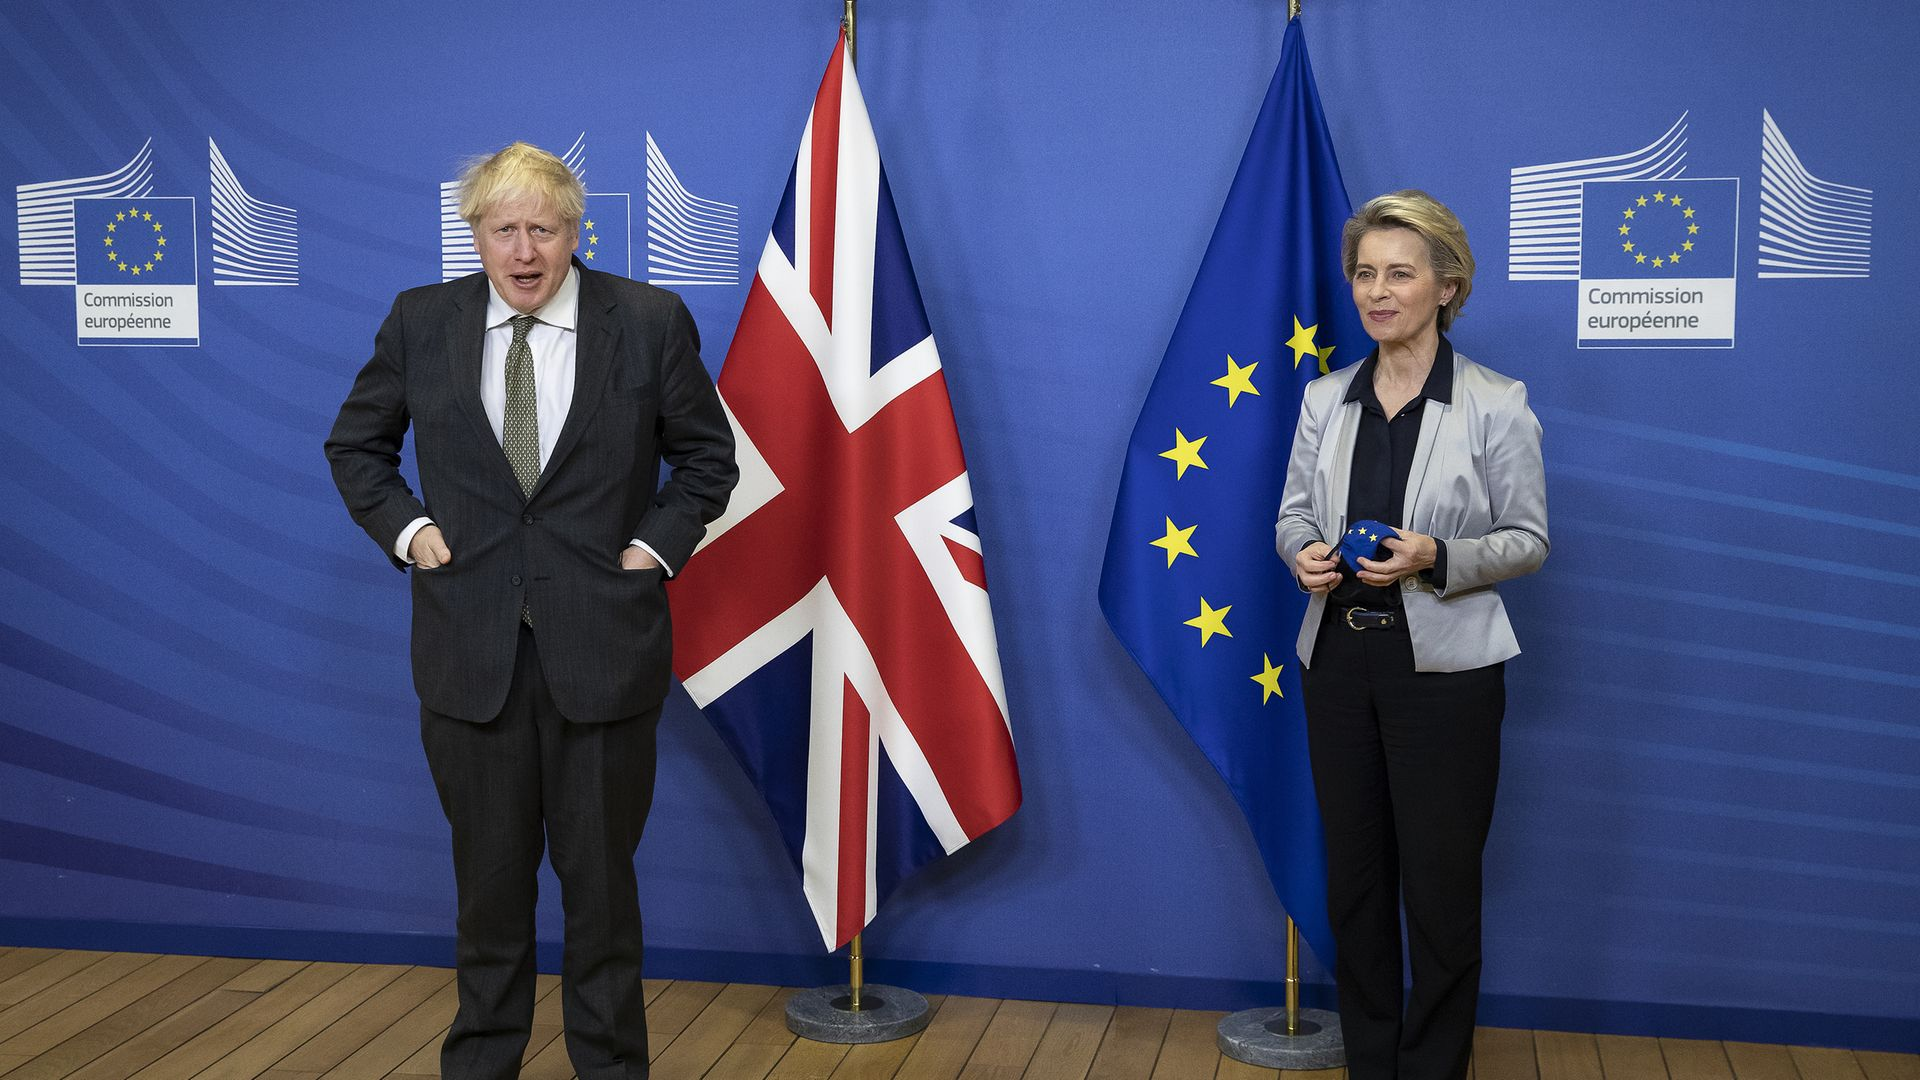 Prime Minister Boris Johnson in Brussels, Belgium, for a dinner with European Commission president Ursula von der Leyen where they will try to reach a breakthrough on a post-Brexit trade deal. - Credit: PA